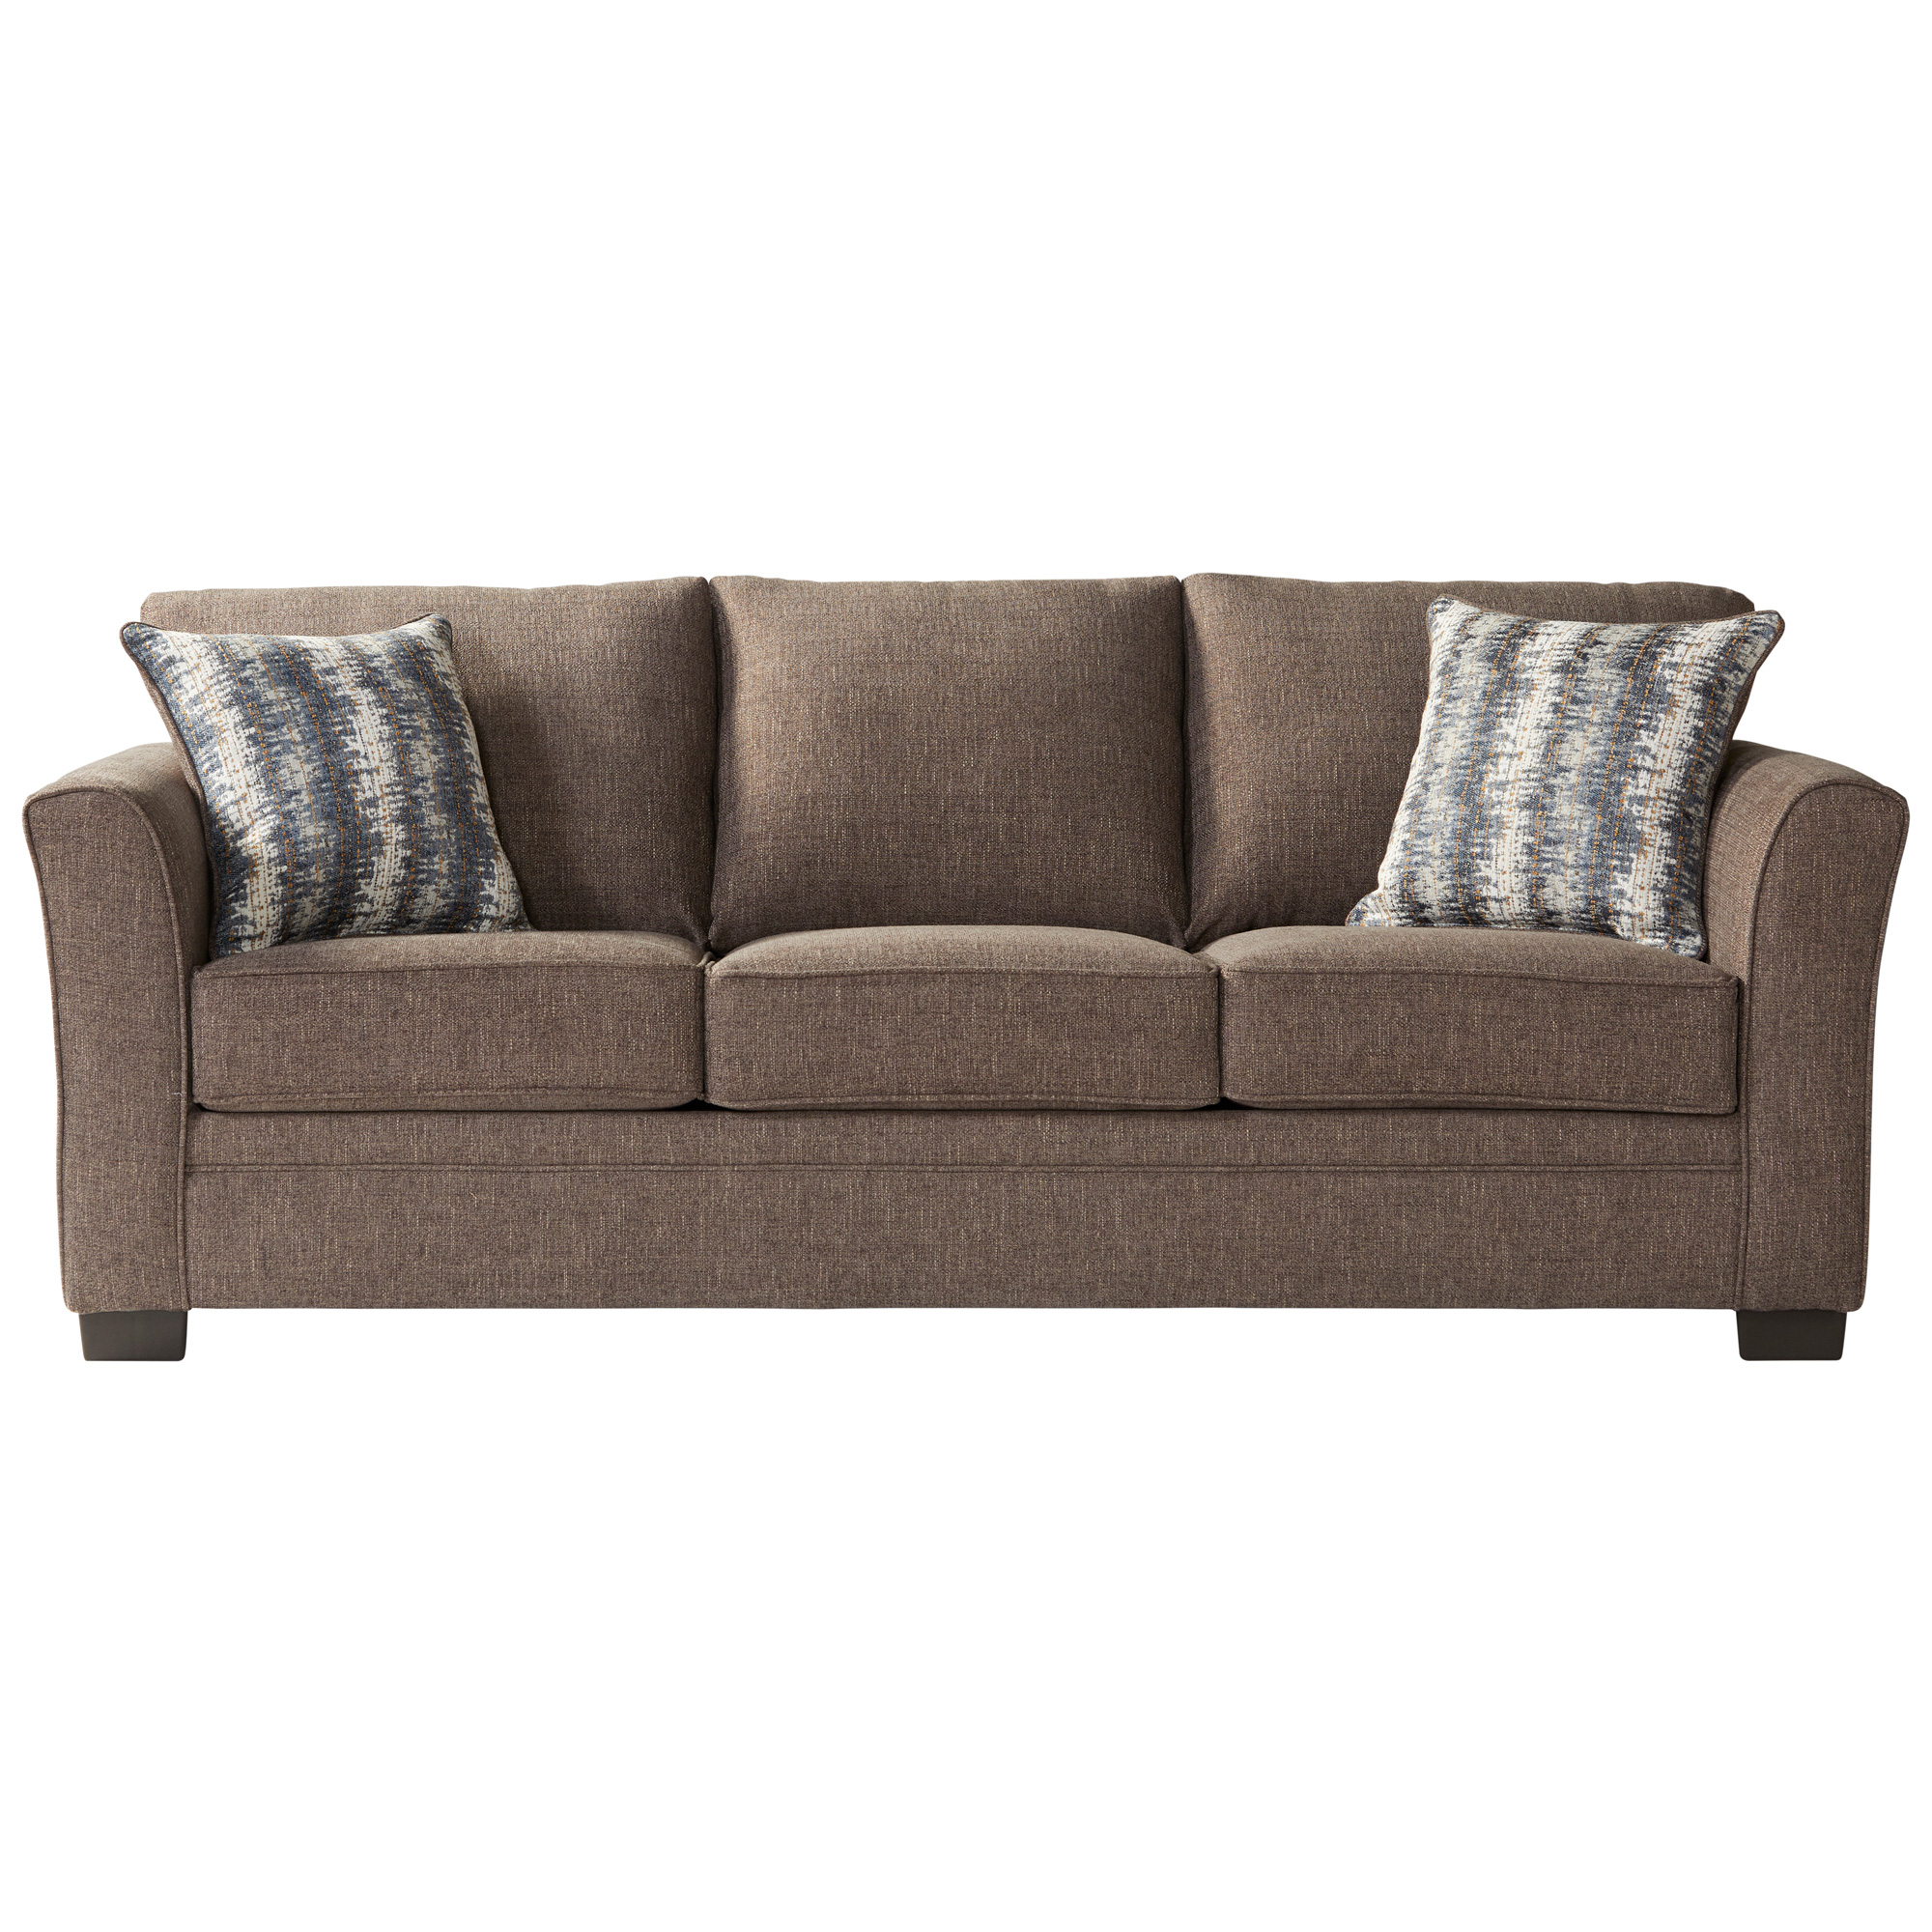 Serta Upholstery By Hughes Furniture | Bolster Umber Queen Sleeper Sofa